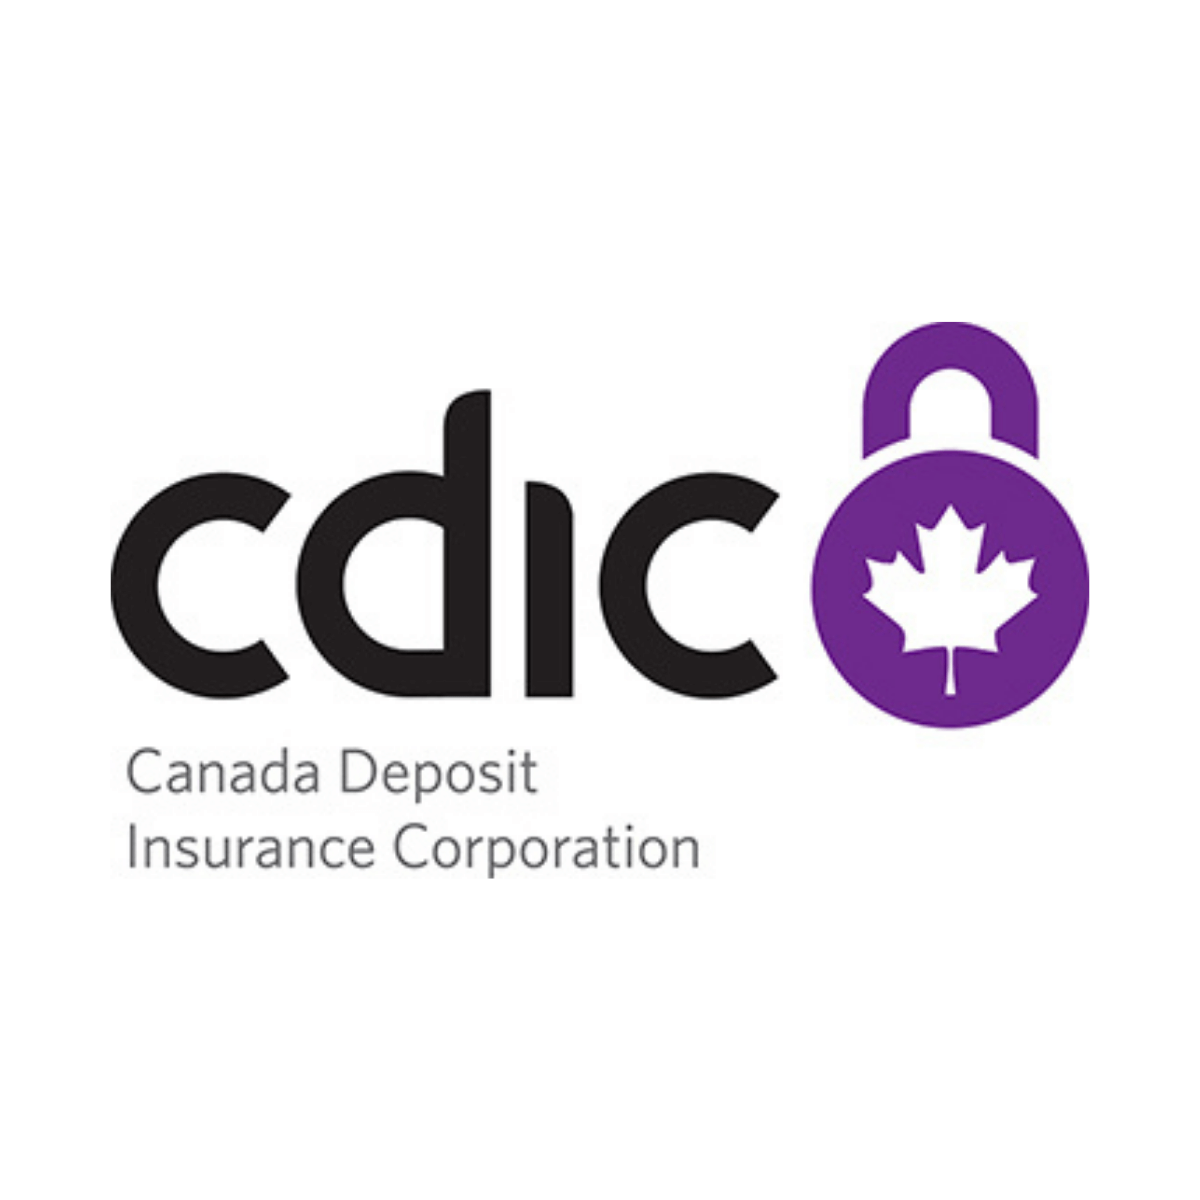 Who Is The Canada Deposit Insurance Corporation (CDIC)?